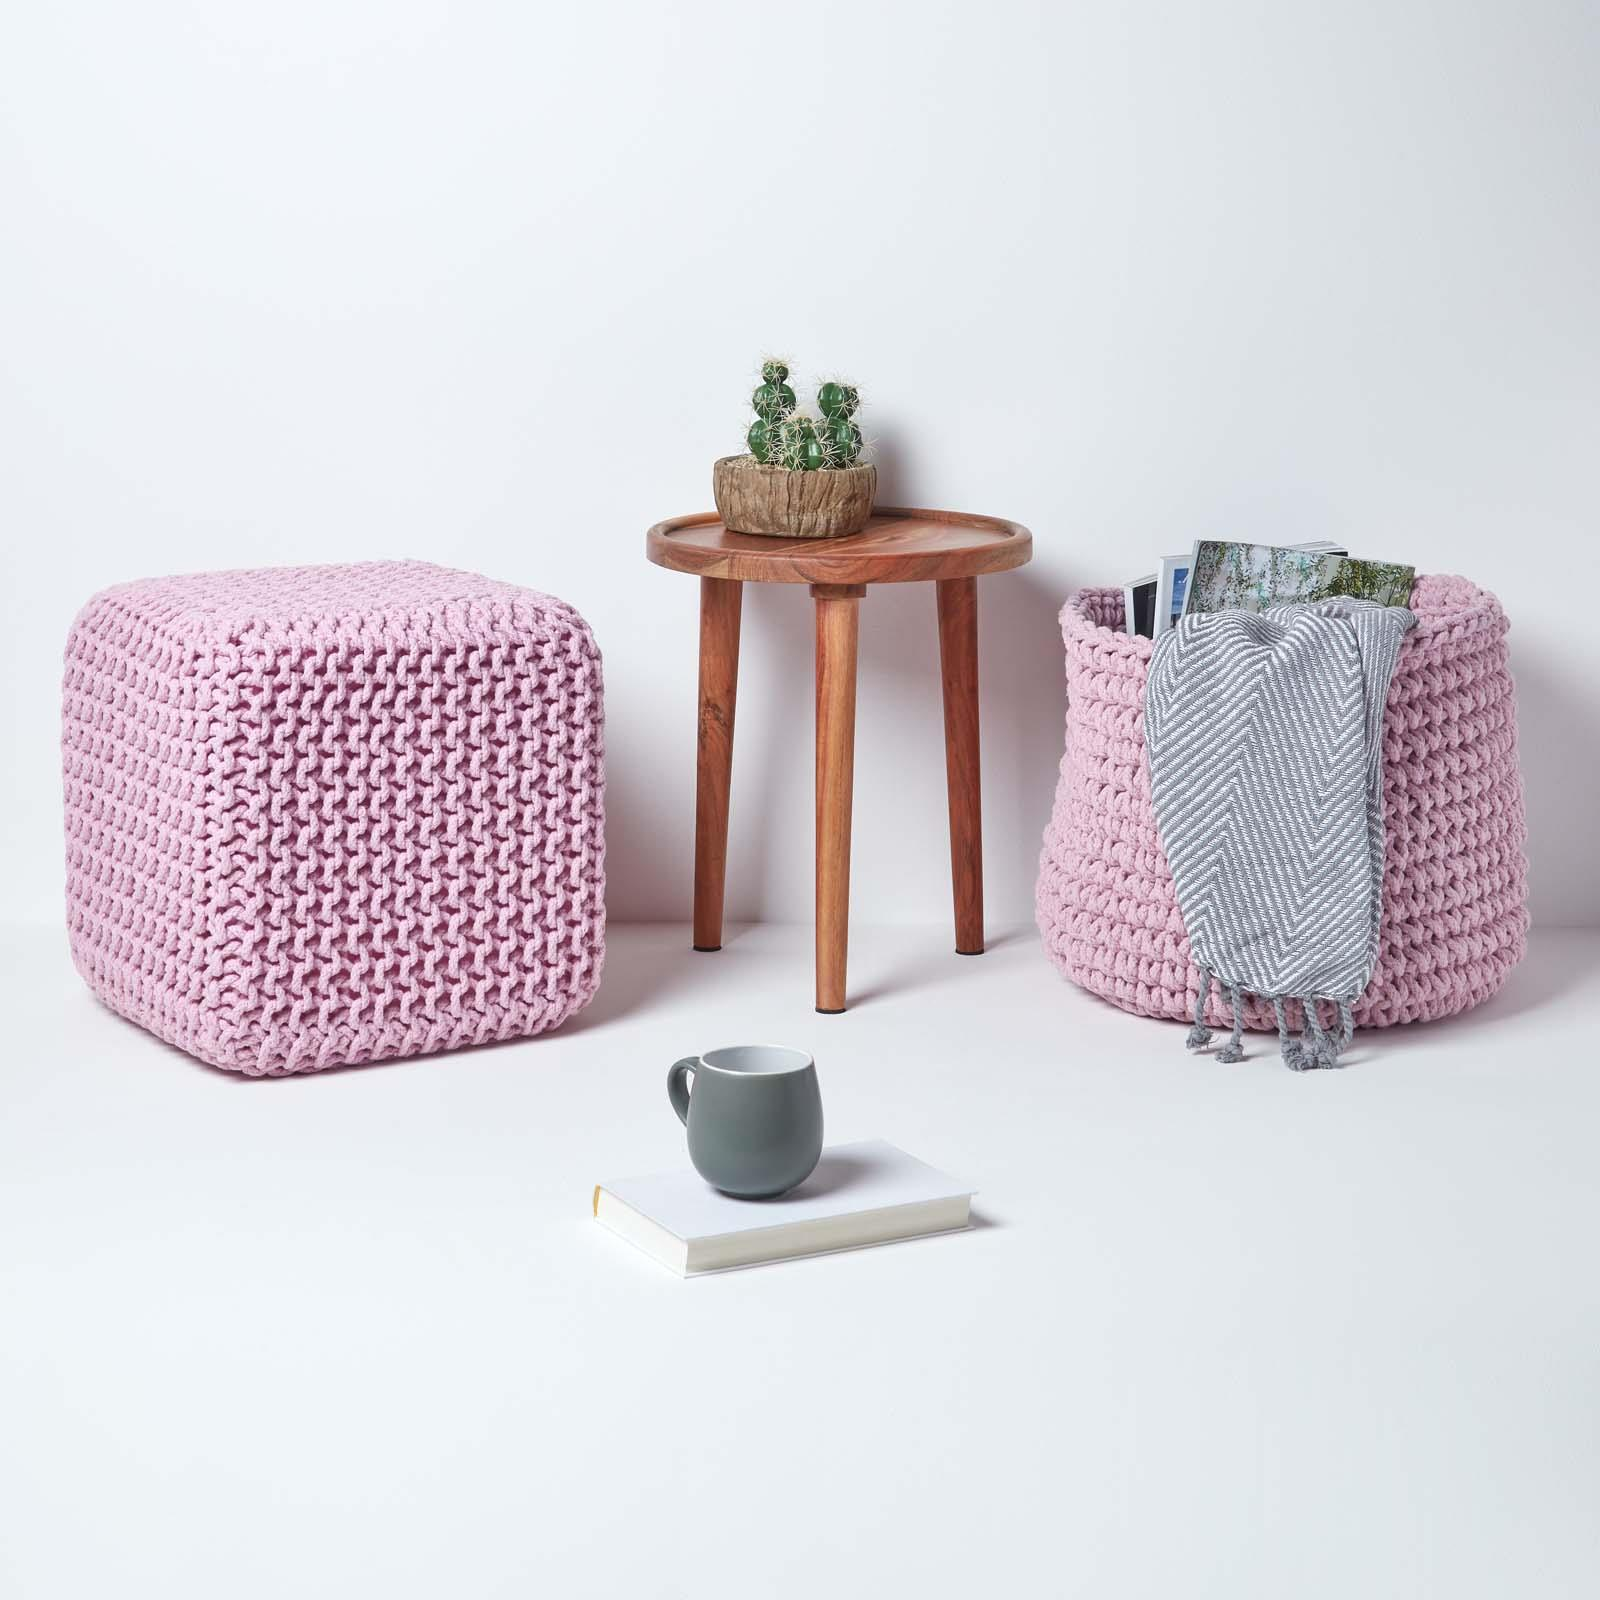 Hand-Knitted-100-Cotton-Pouffes-Round-Sphere-Or-Cube-Square-Chunky-Footstools thumbnail 150